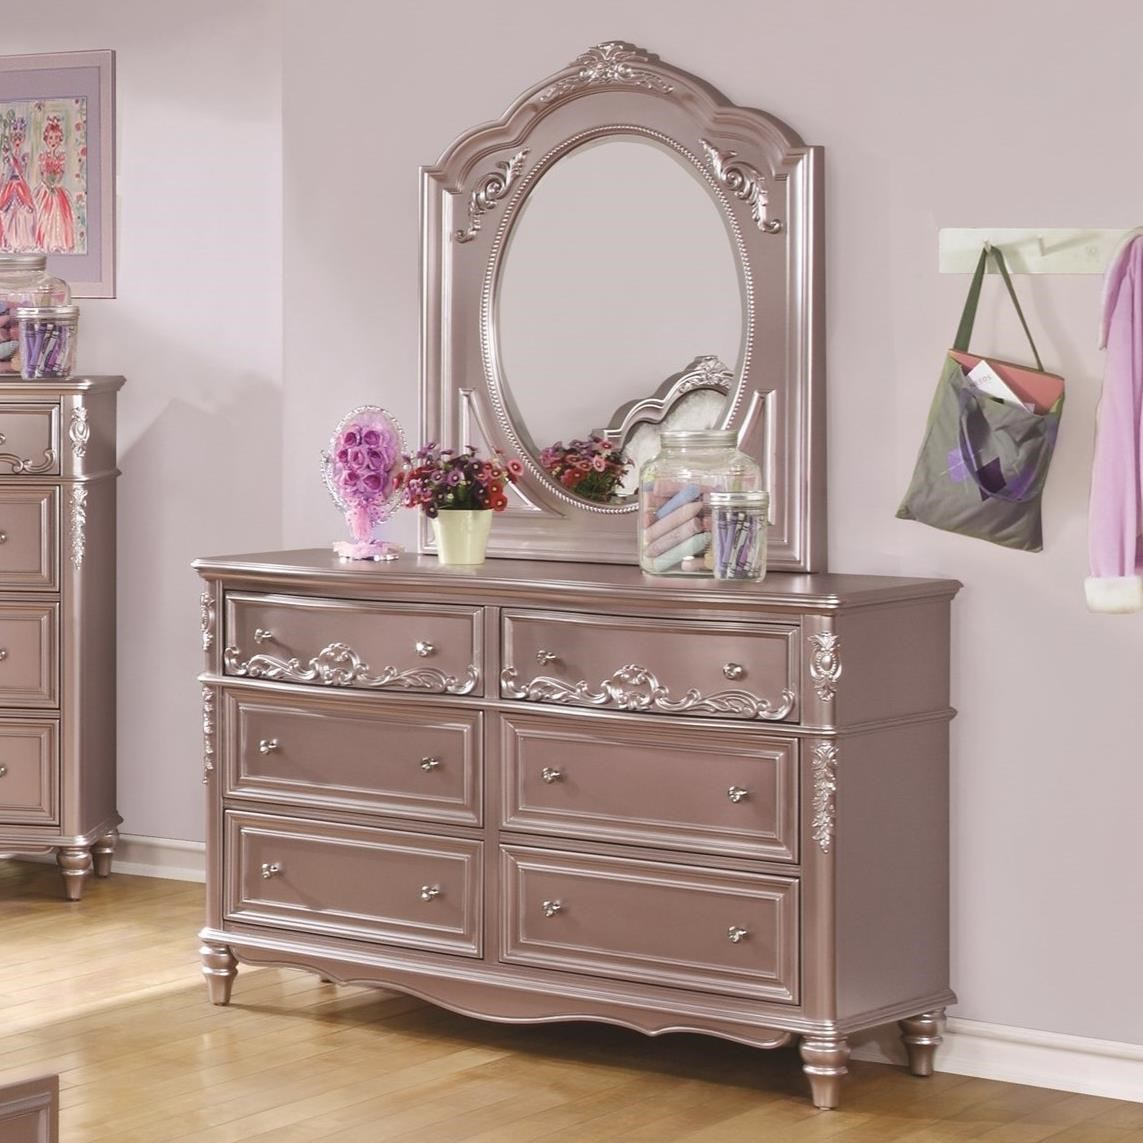 coaster caroline decorative 6 drawer dresser and mirror 14275 | products 2fcoaster 2fcolor 2fcaroline 204007 400893 2b94 b1